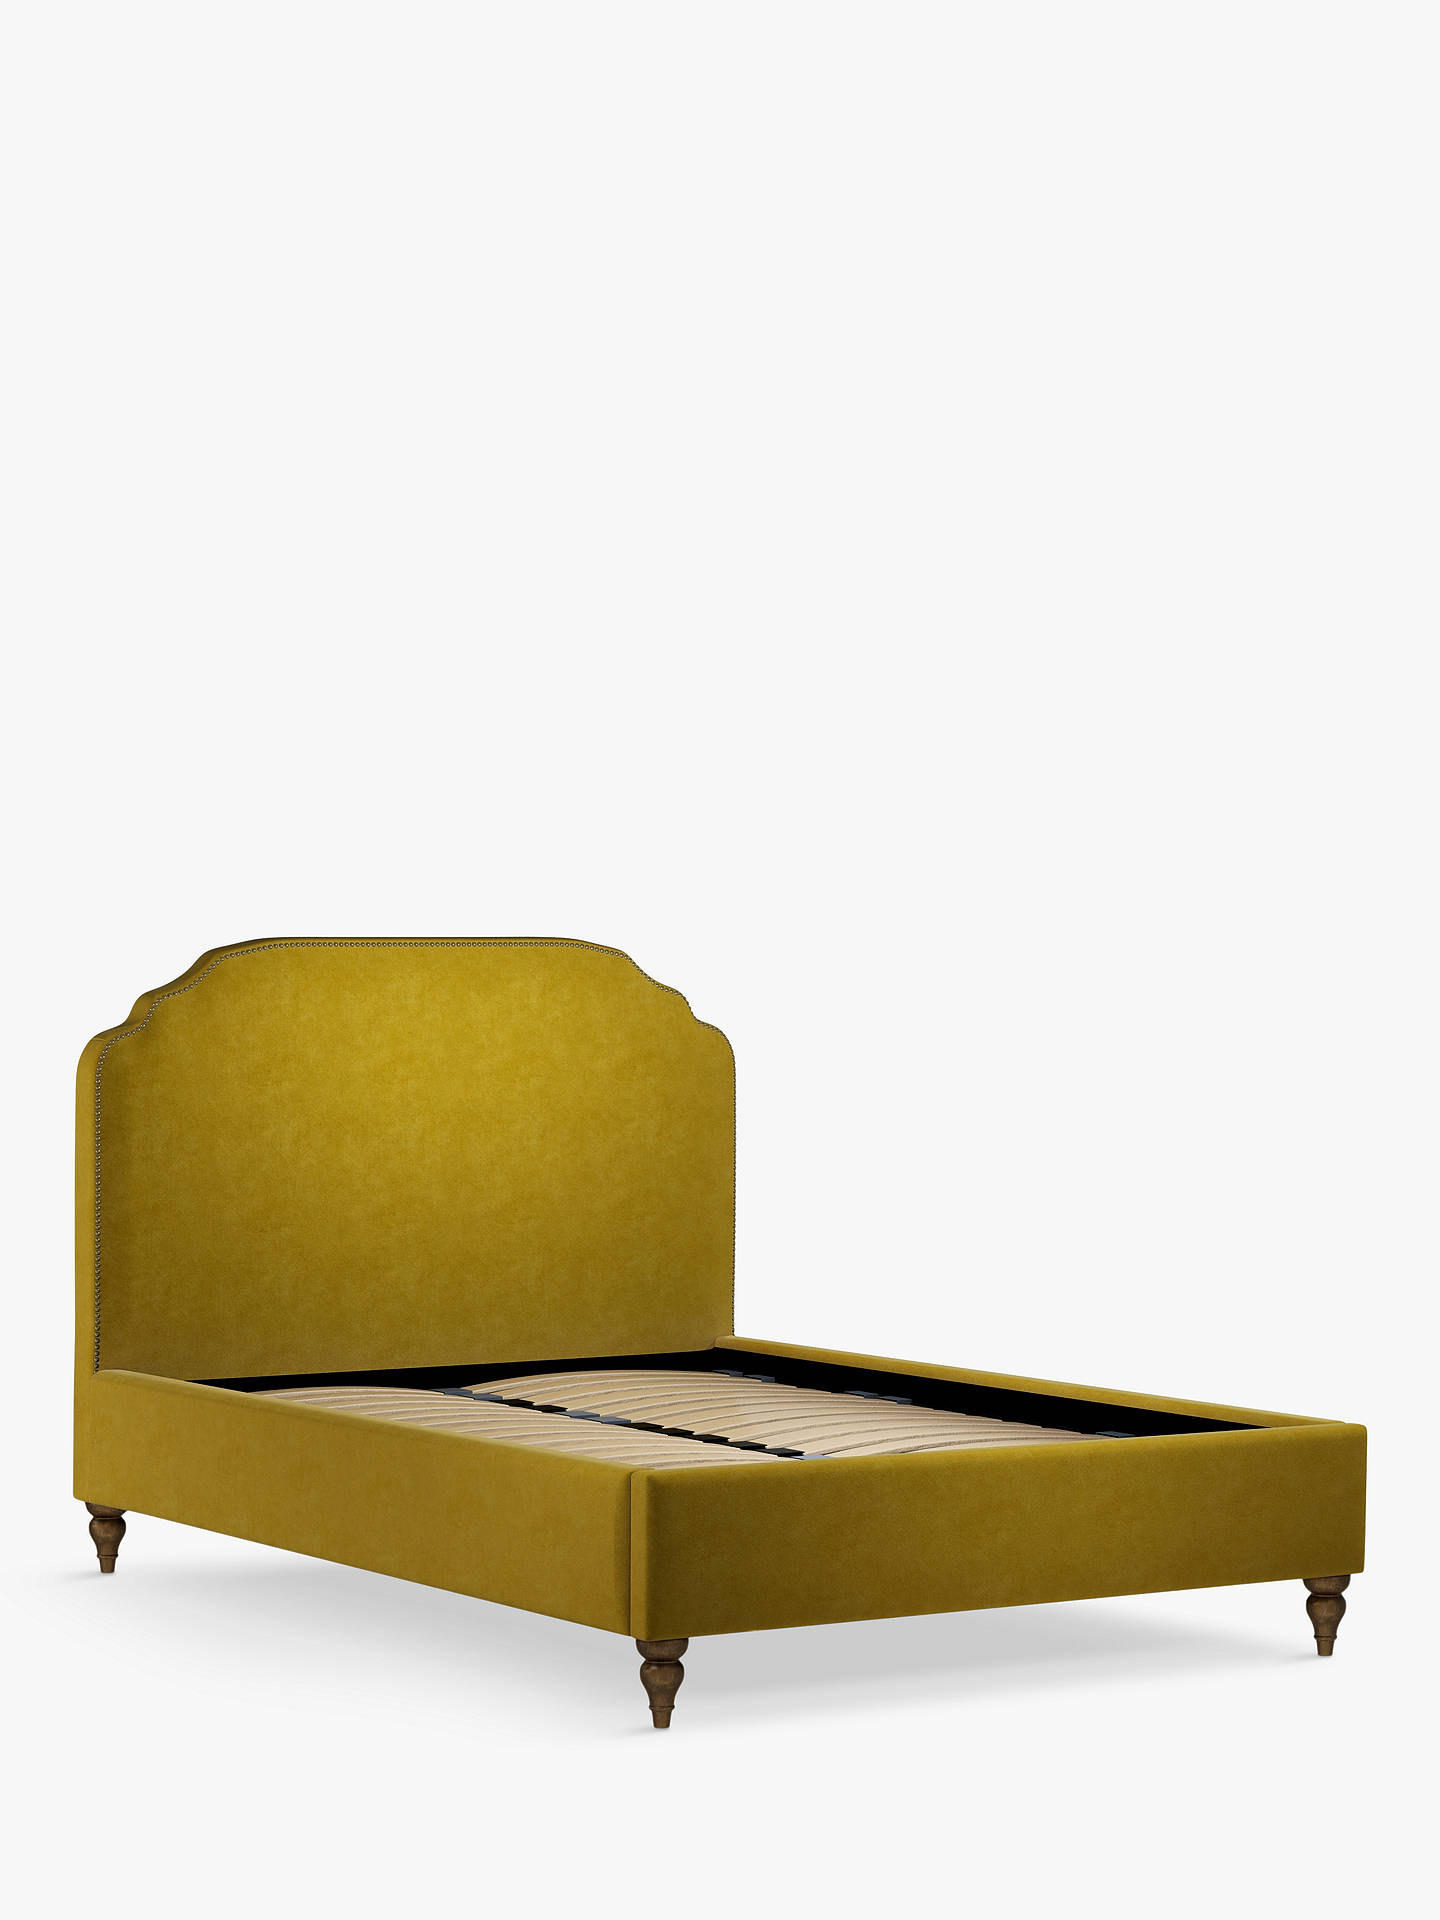 Buy John Lewis & Partners Studded Upholstered Bed Frame, Double, Aquaclean Harriet Mustard Online at johnlewis.com